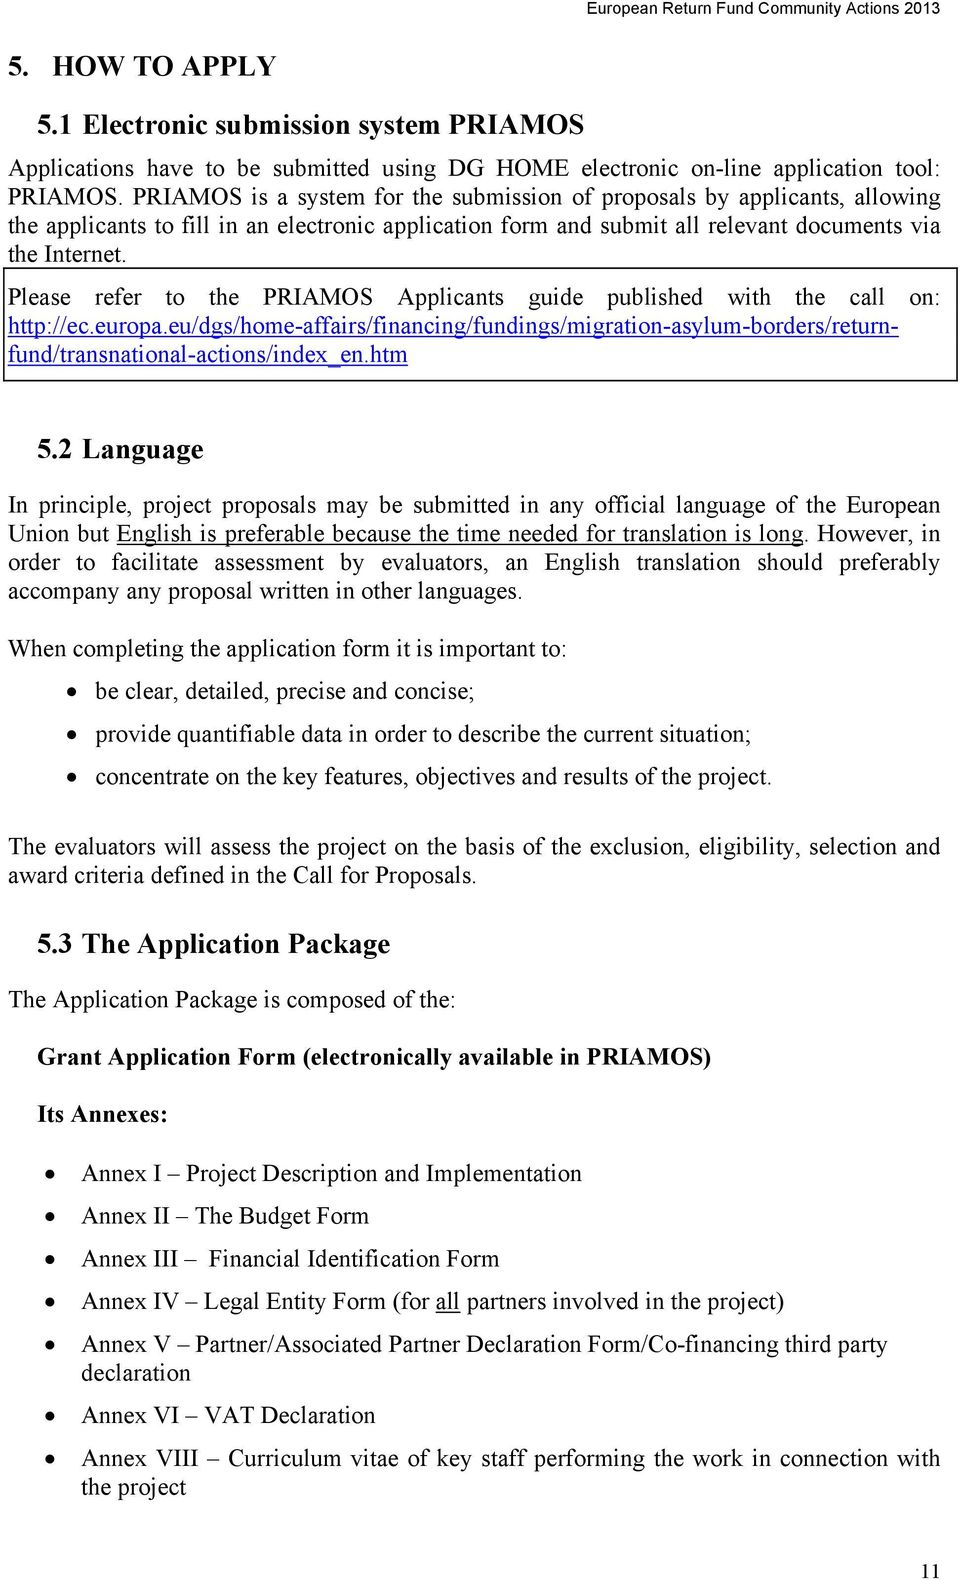 Please refer to the PRIAMOS Applicants guide published with the call on: http://ec.europa.eu/dgs/home-affairs/financing/fundings/migration-asylum-borders/returnfund/transnational-actions/index_en.